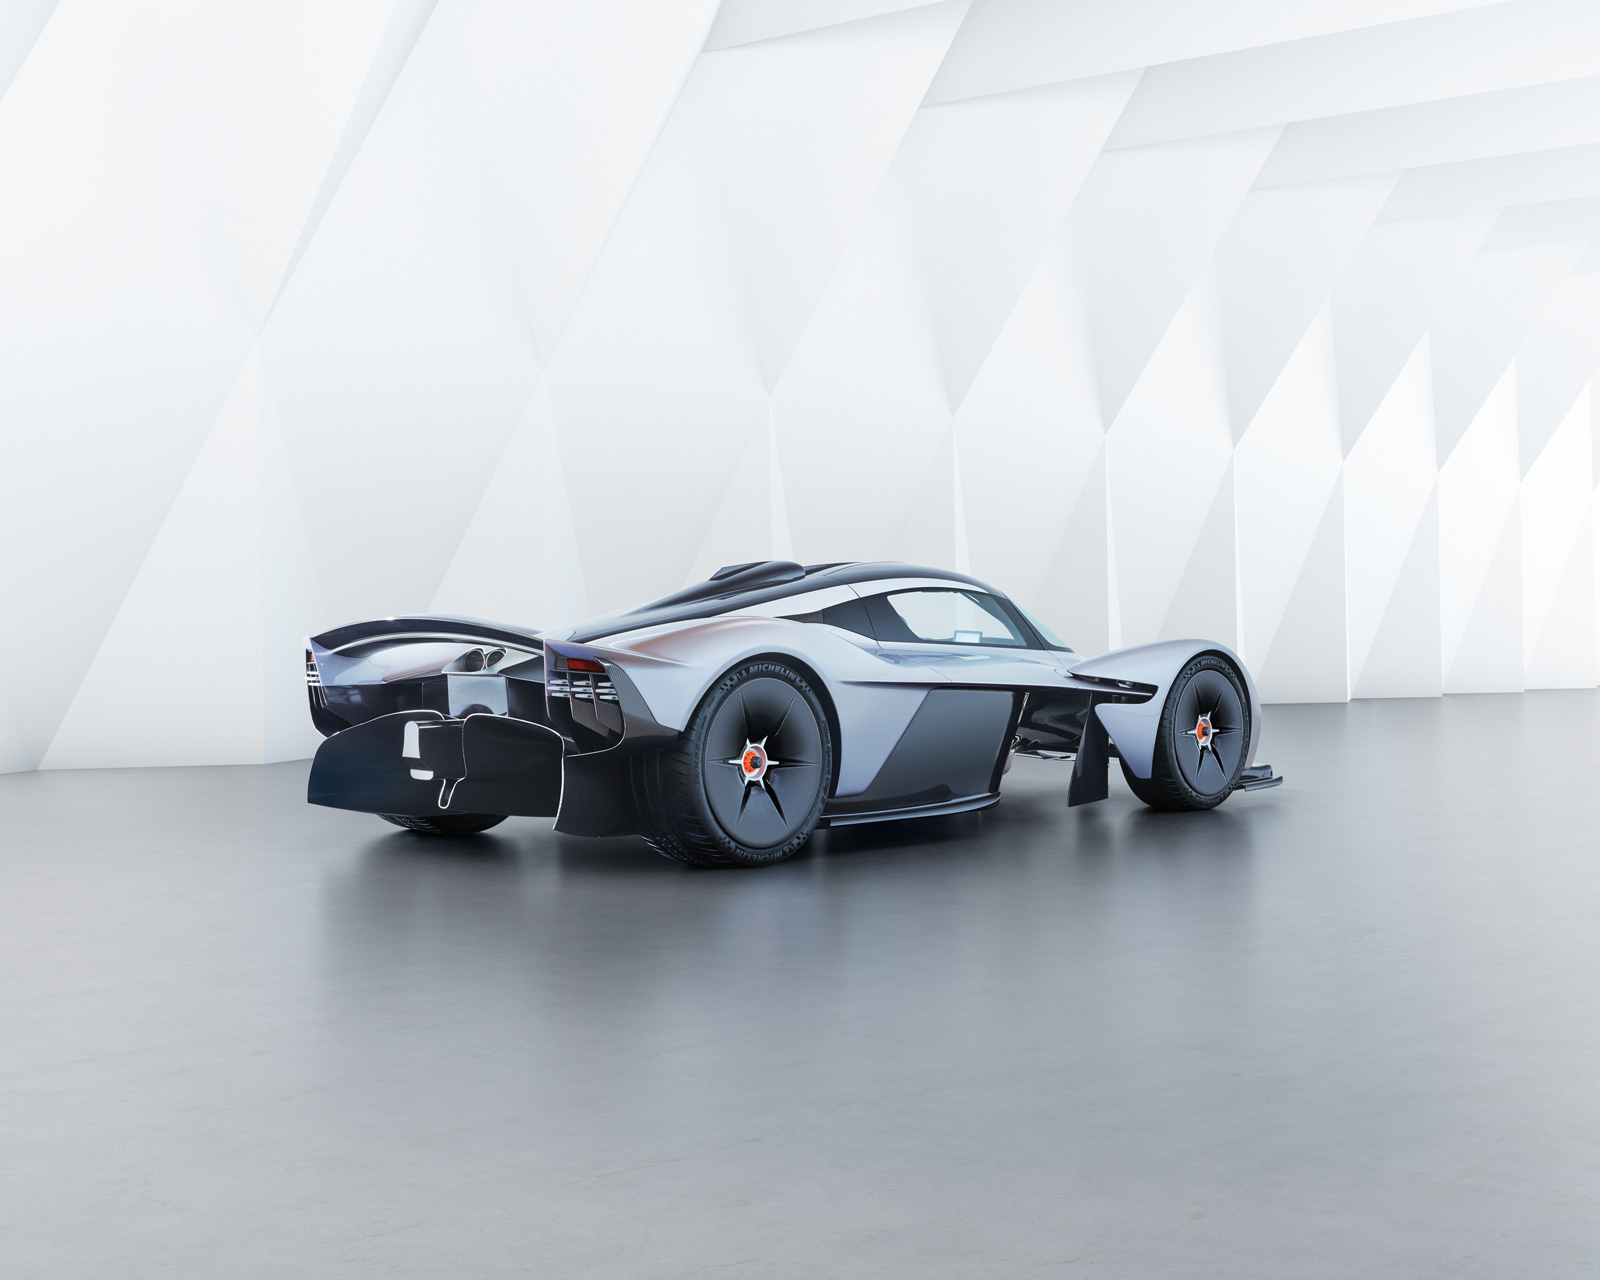 Aston Martin Valkyrie Will Make 1,130 HP From its Cosworth V12